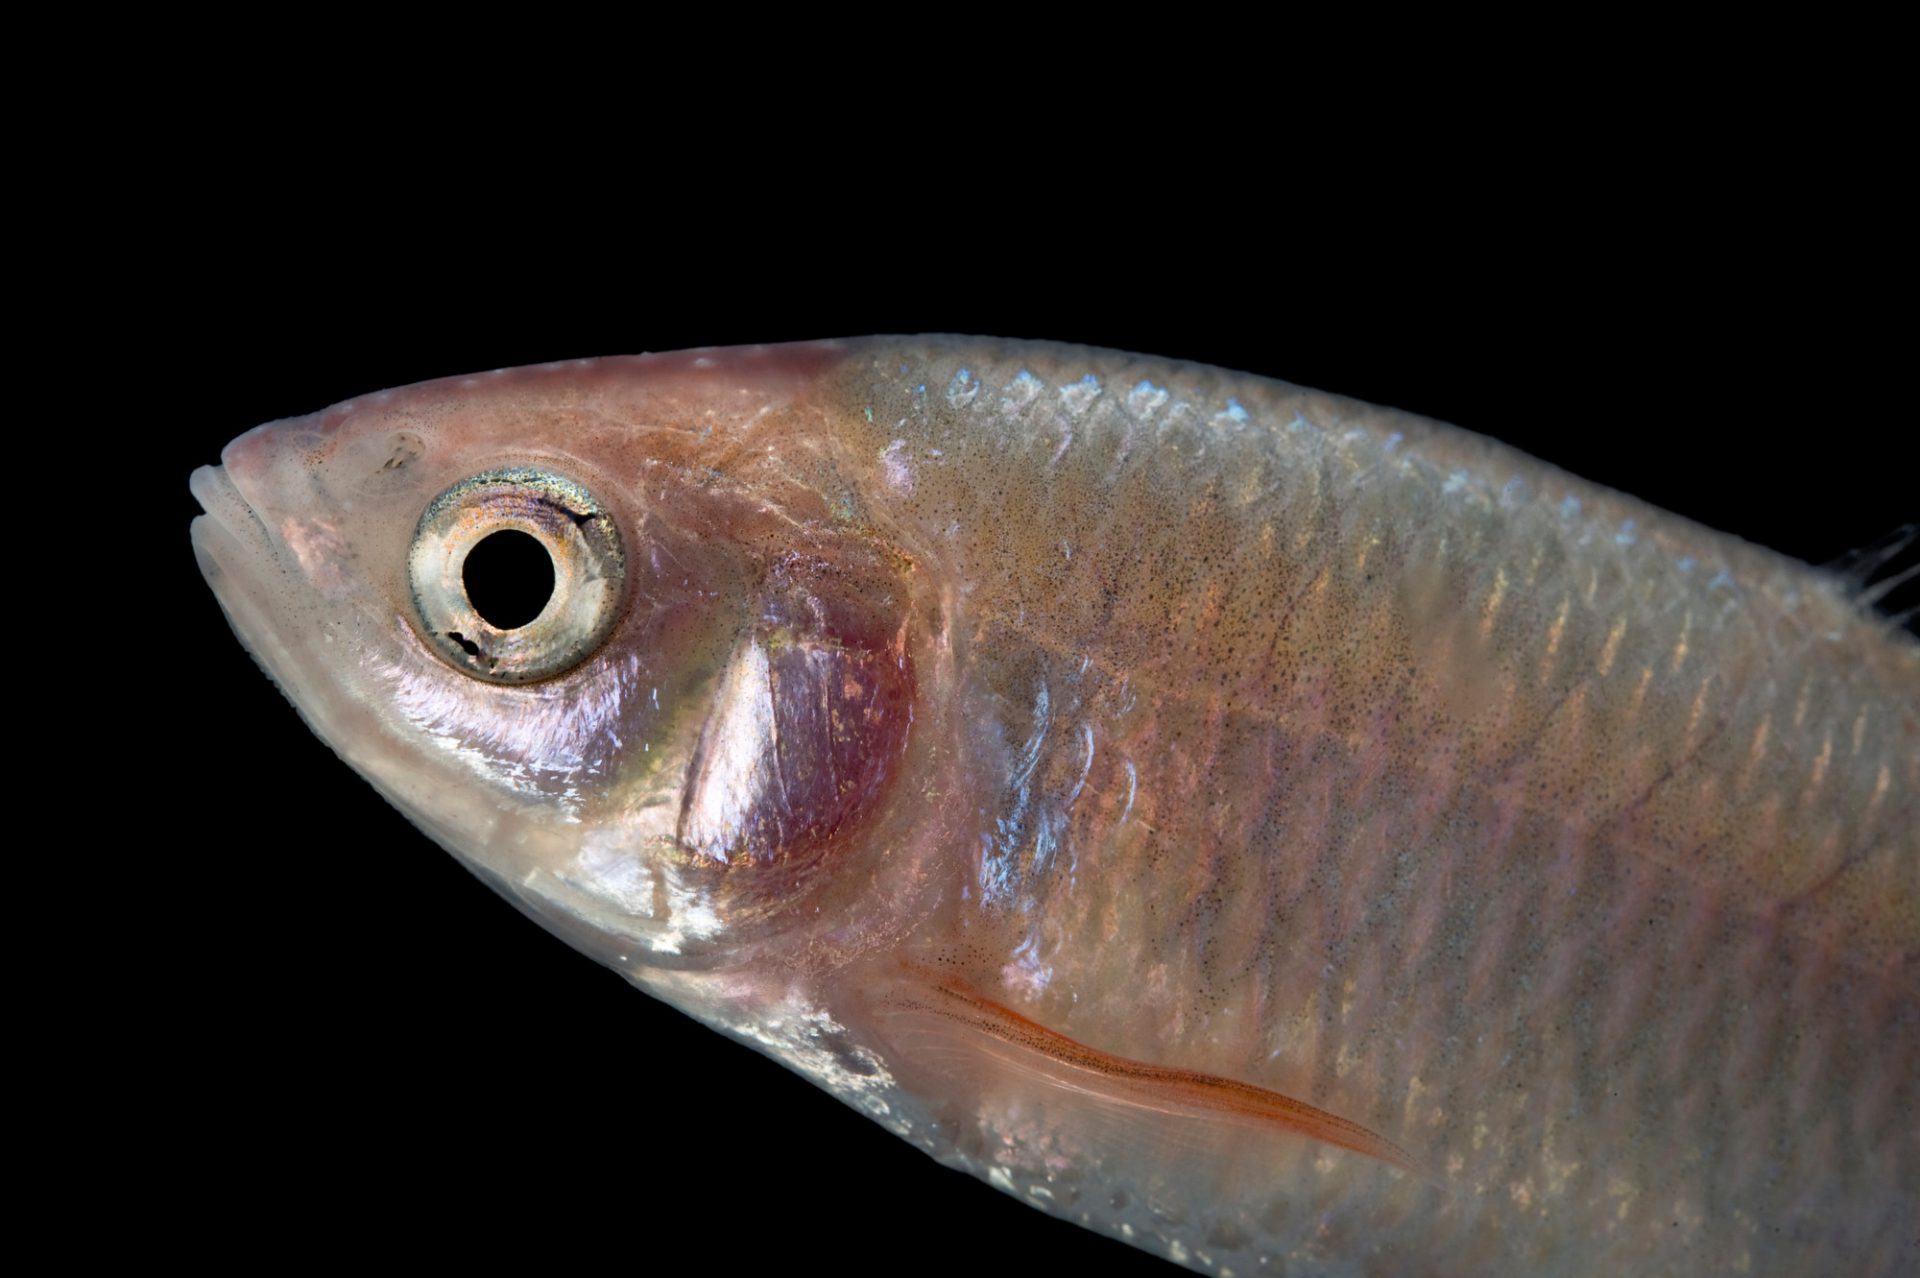 A red shiner (Cyprinella lutrensis).